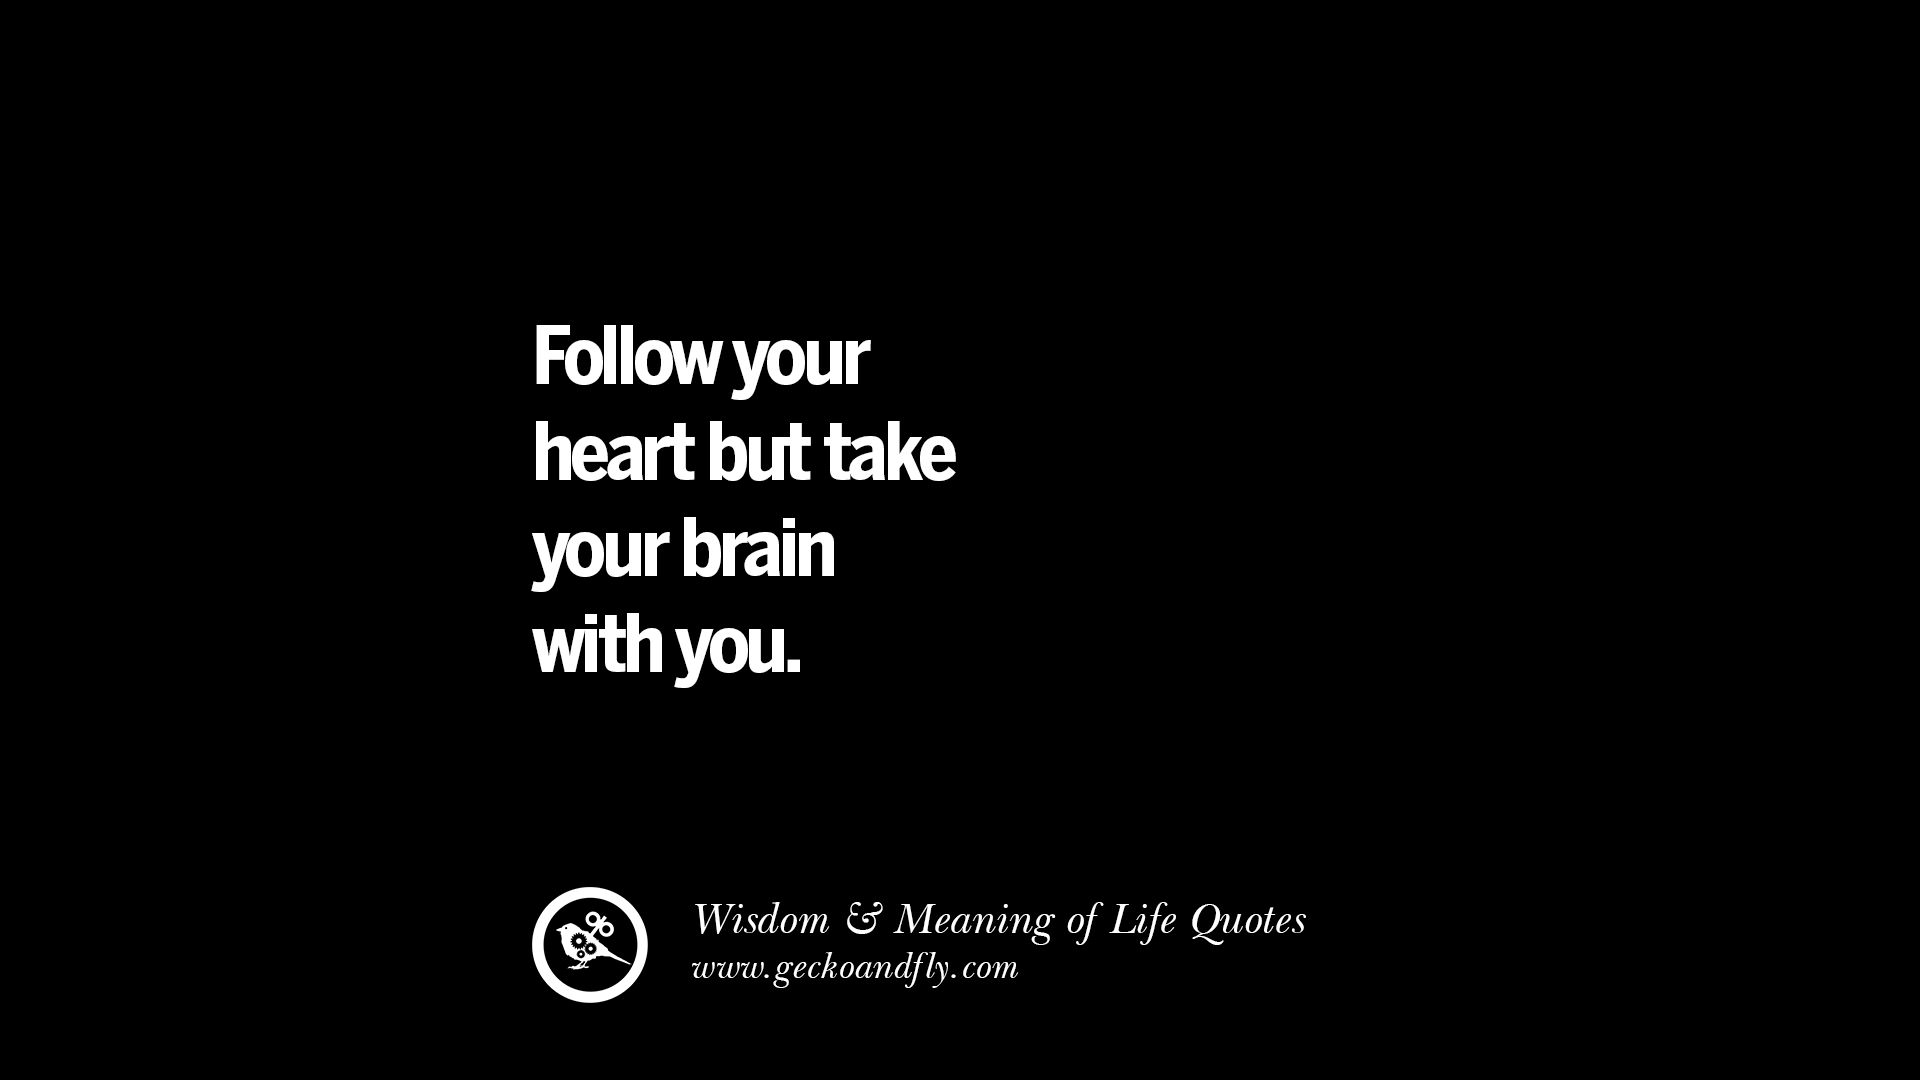 Short Wise Sayings : Follow your heart but take your brain with you. funny wise quotes ...